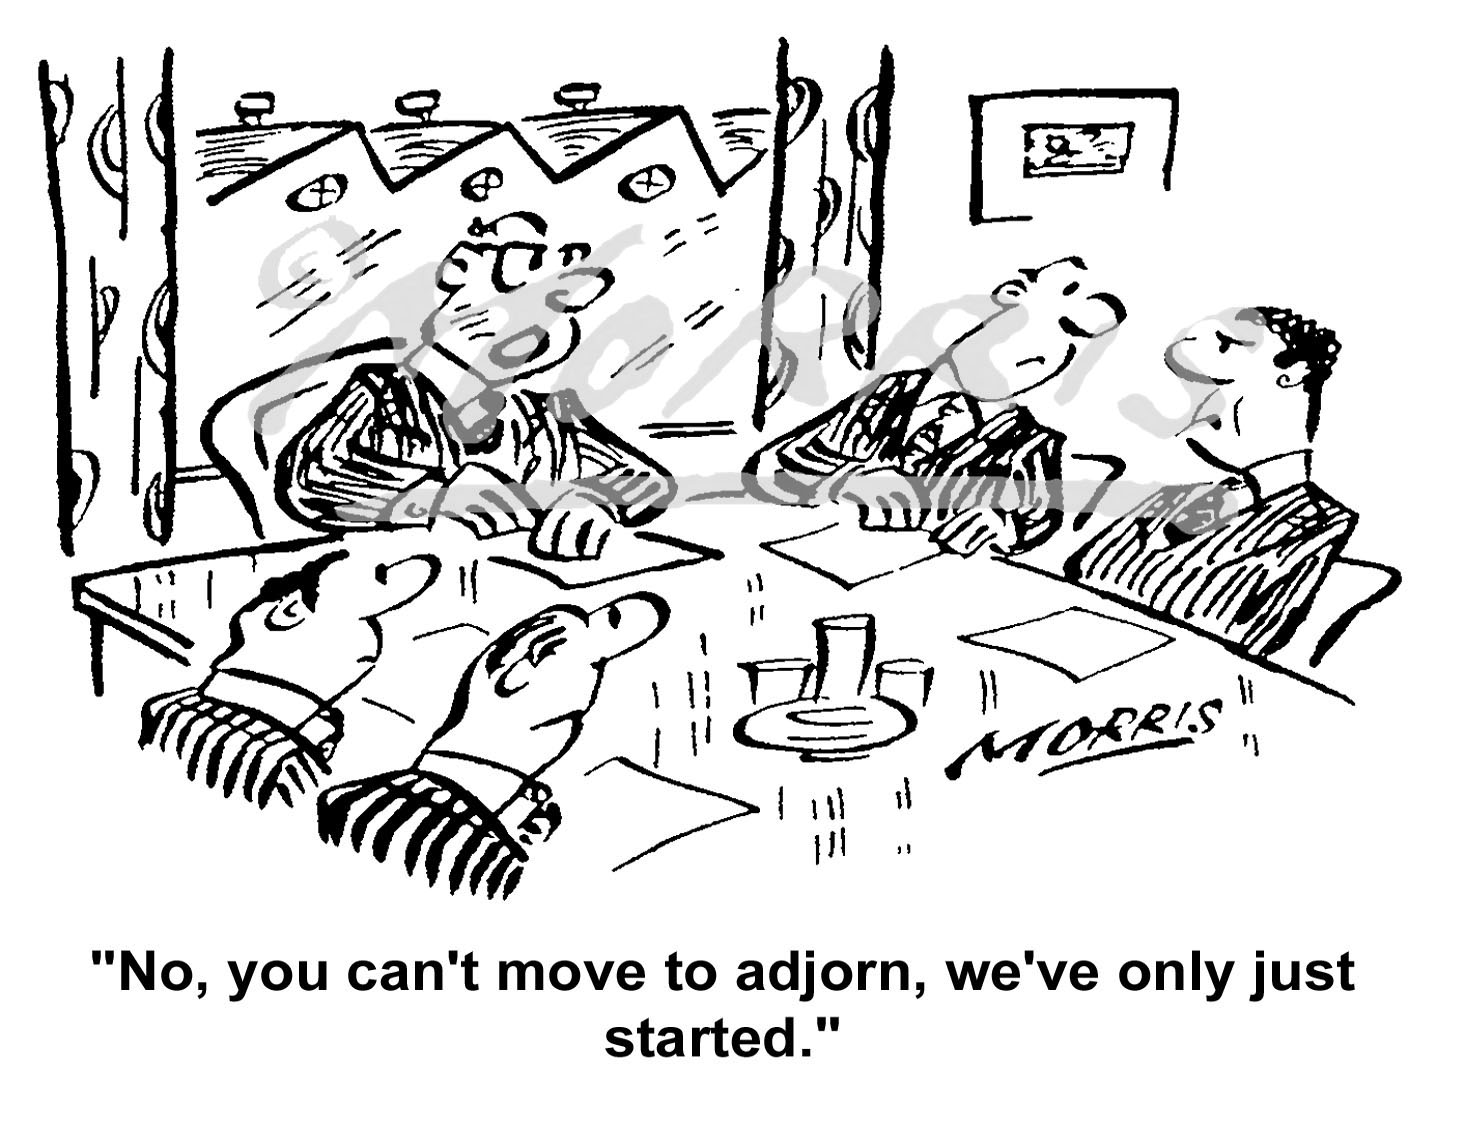 Boardroom meeting cartoon – Ref: 5144bw